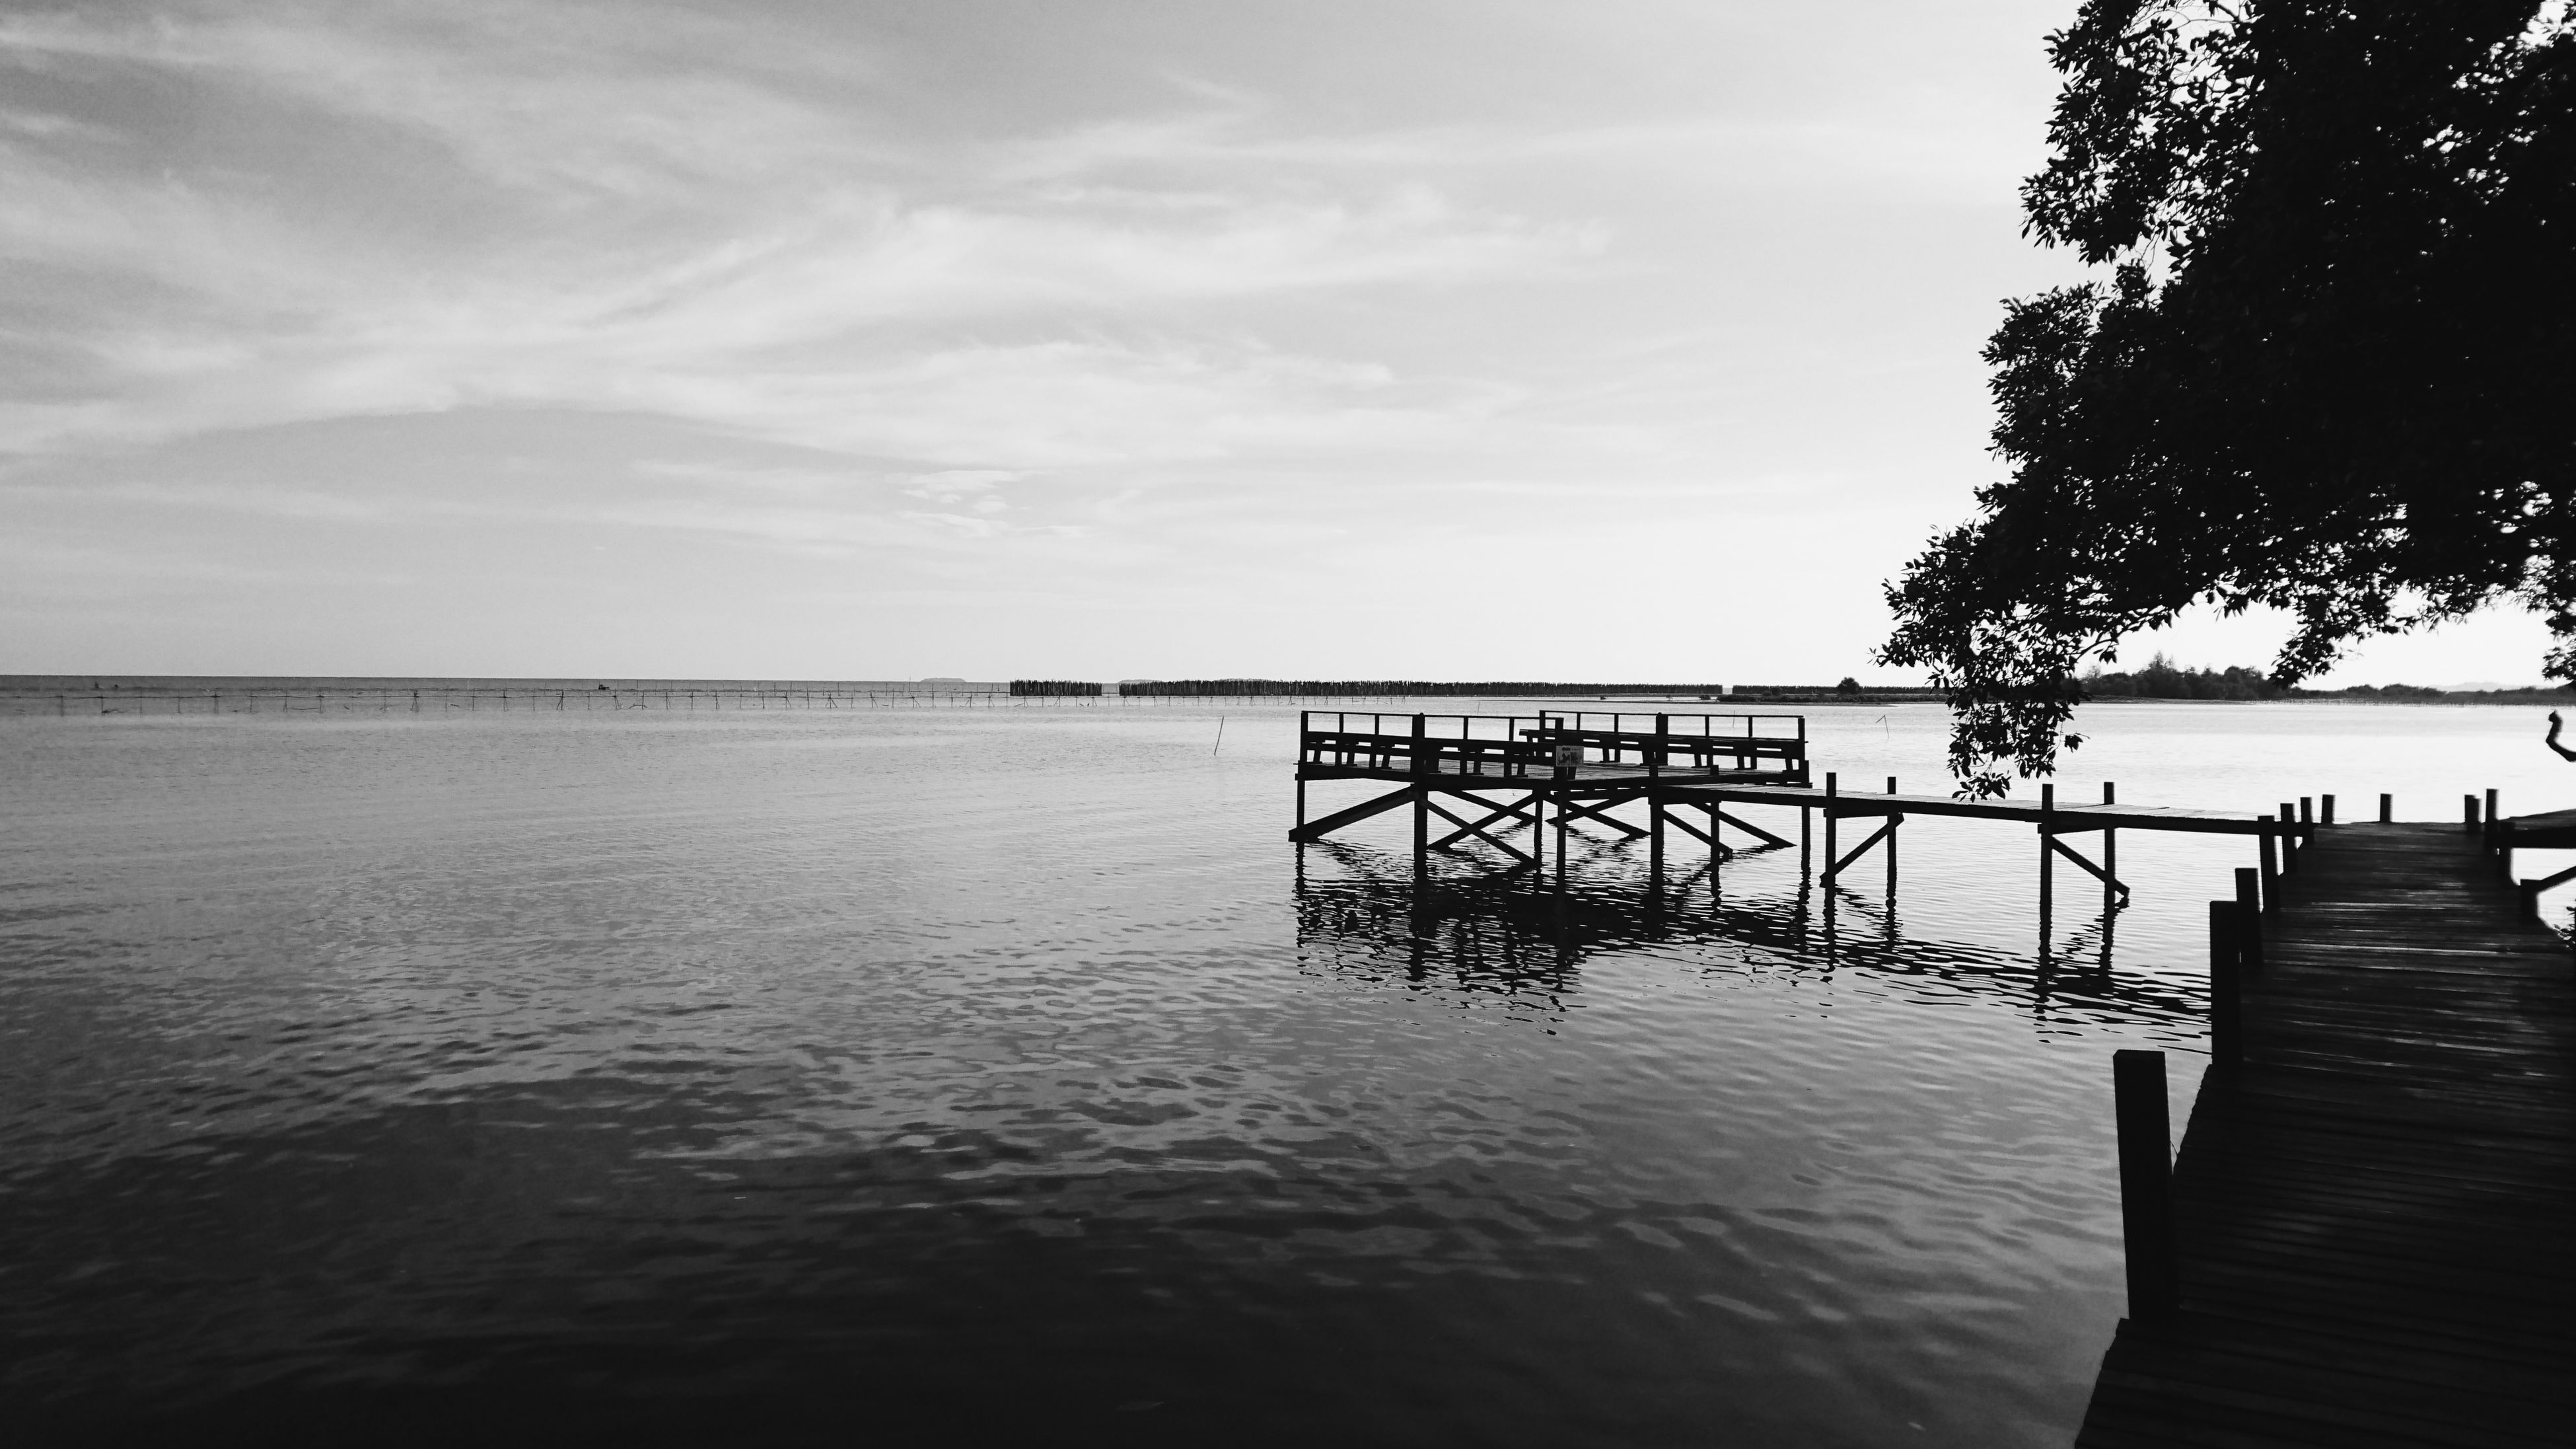 water, sky, nature, sea, cloud - sky, beauty in nature, tranquility, no people, scenics, tranquil scene, outdoors, day, horizon over water, tree, architecture